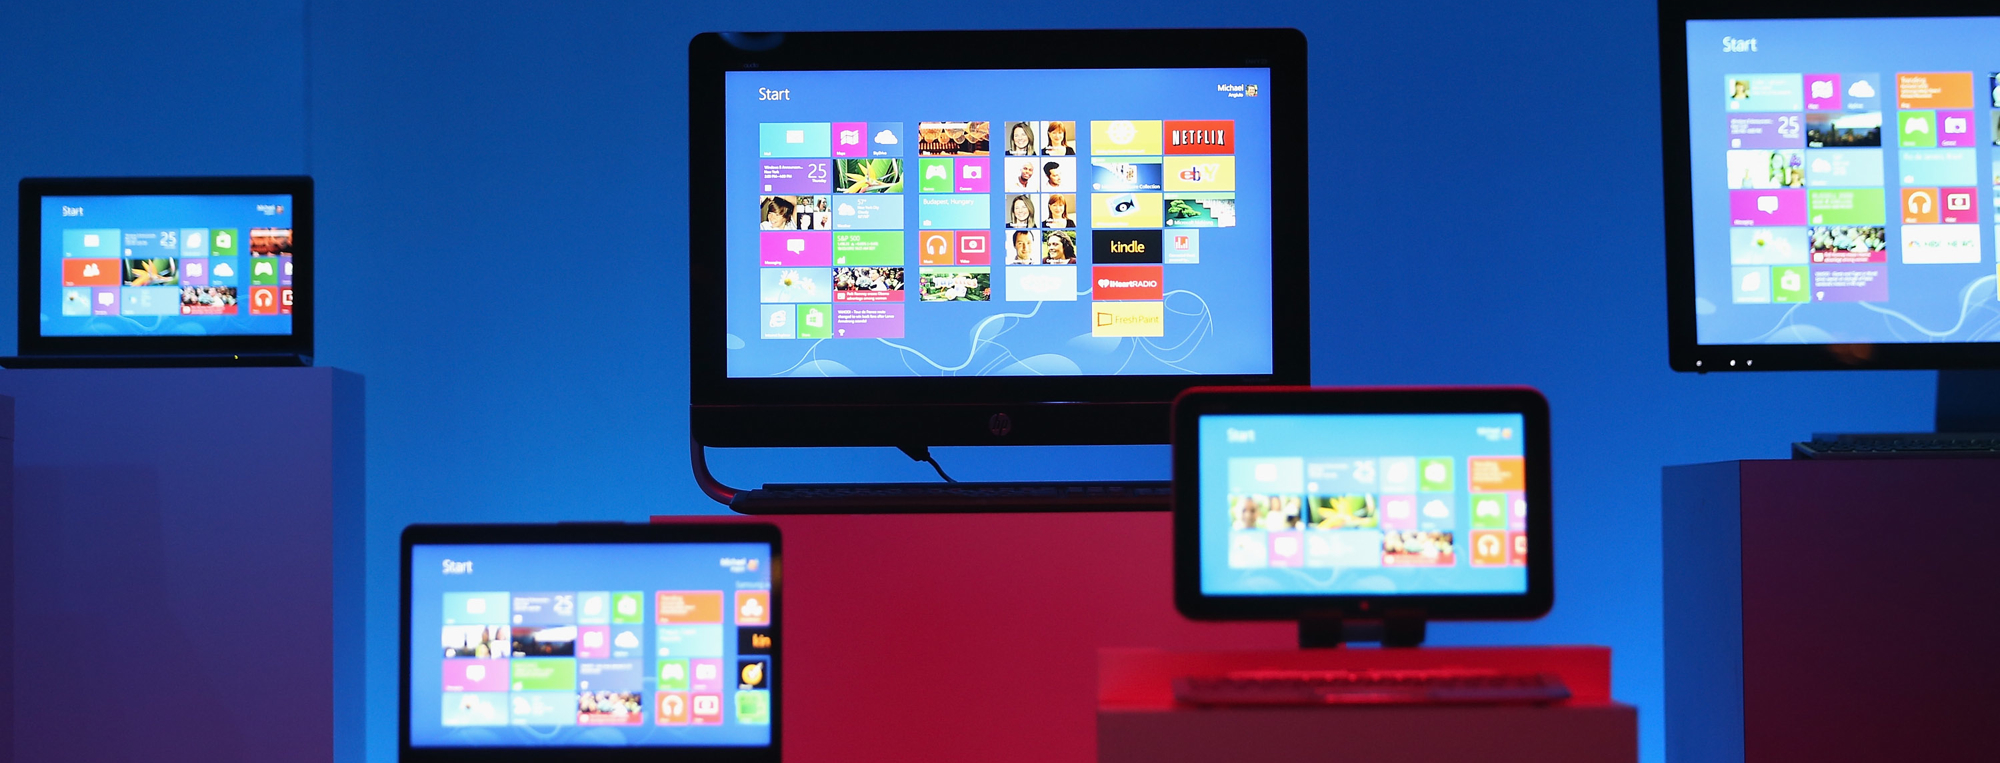 Windows 8 Sells 100 Million Fewer Copies than Windows 7 at 15 Months